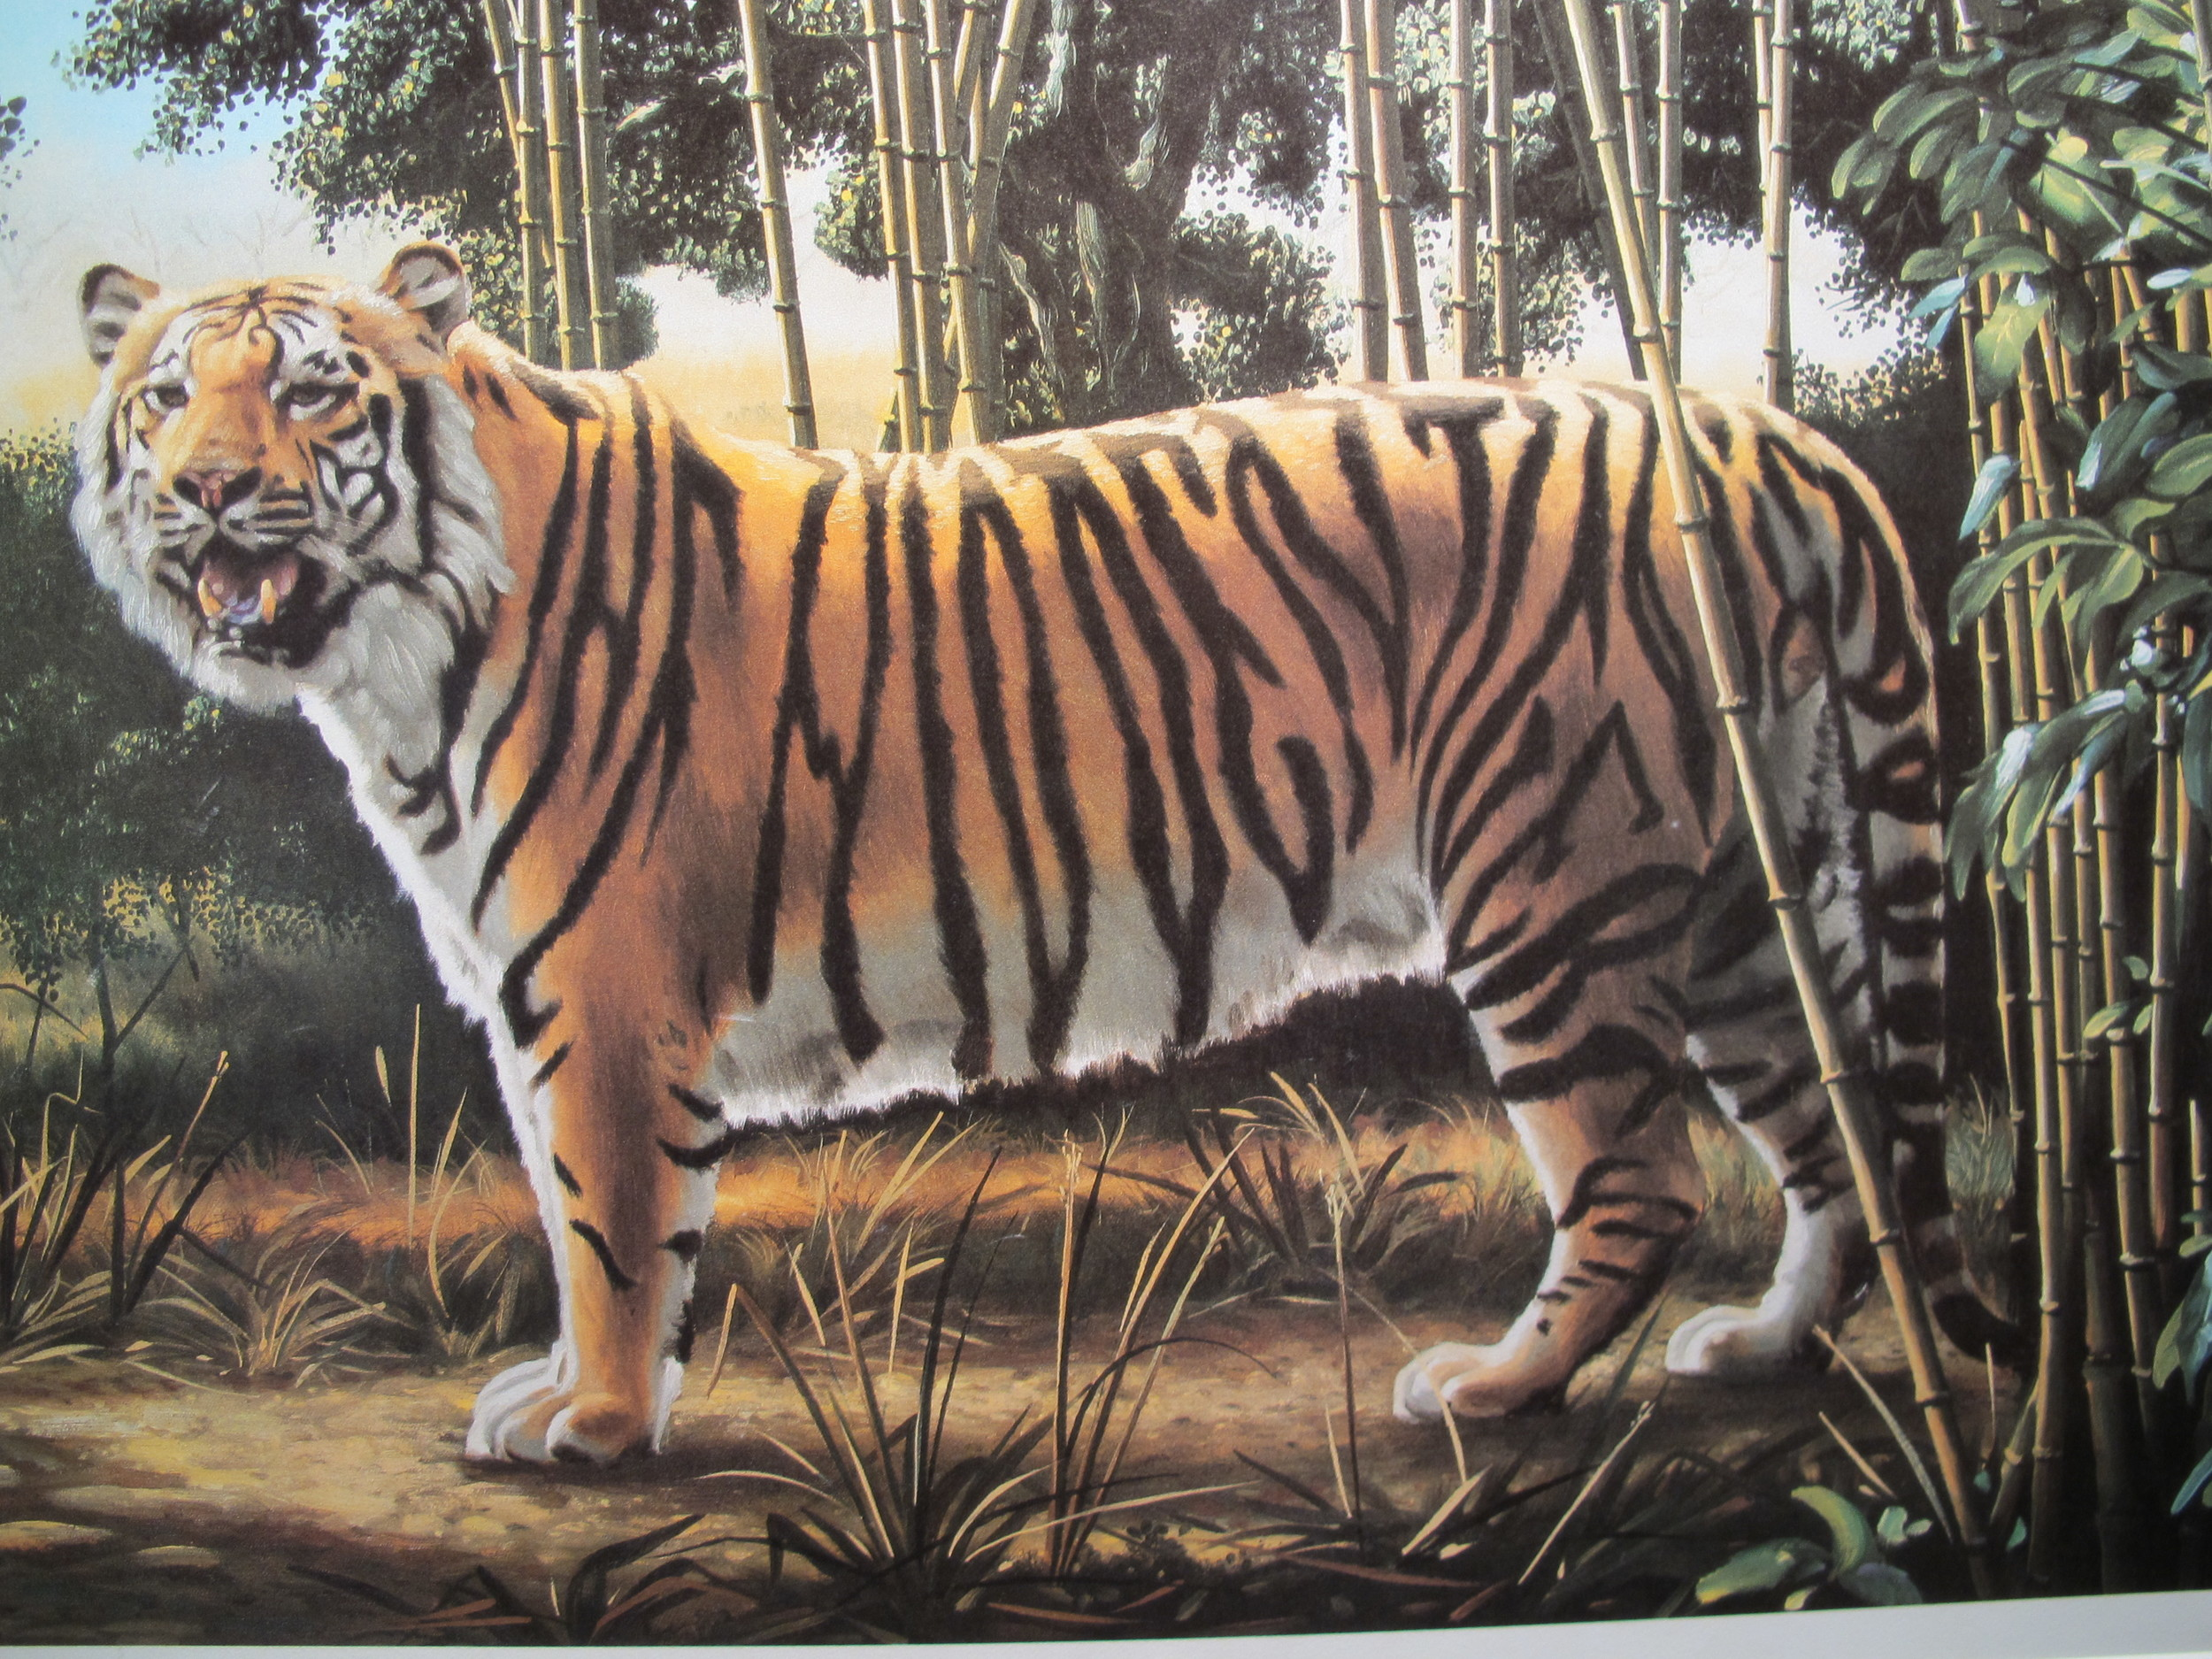 Can you find the hidden tiger in this photo? It's also a visual trick from the Camera Obscura.